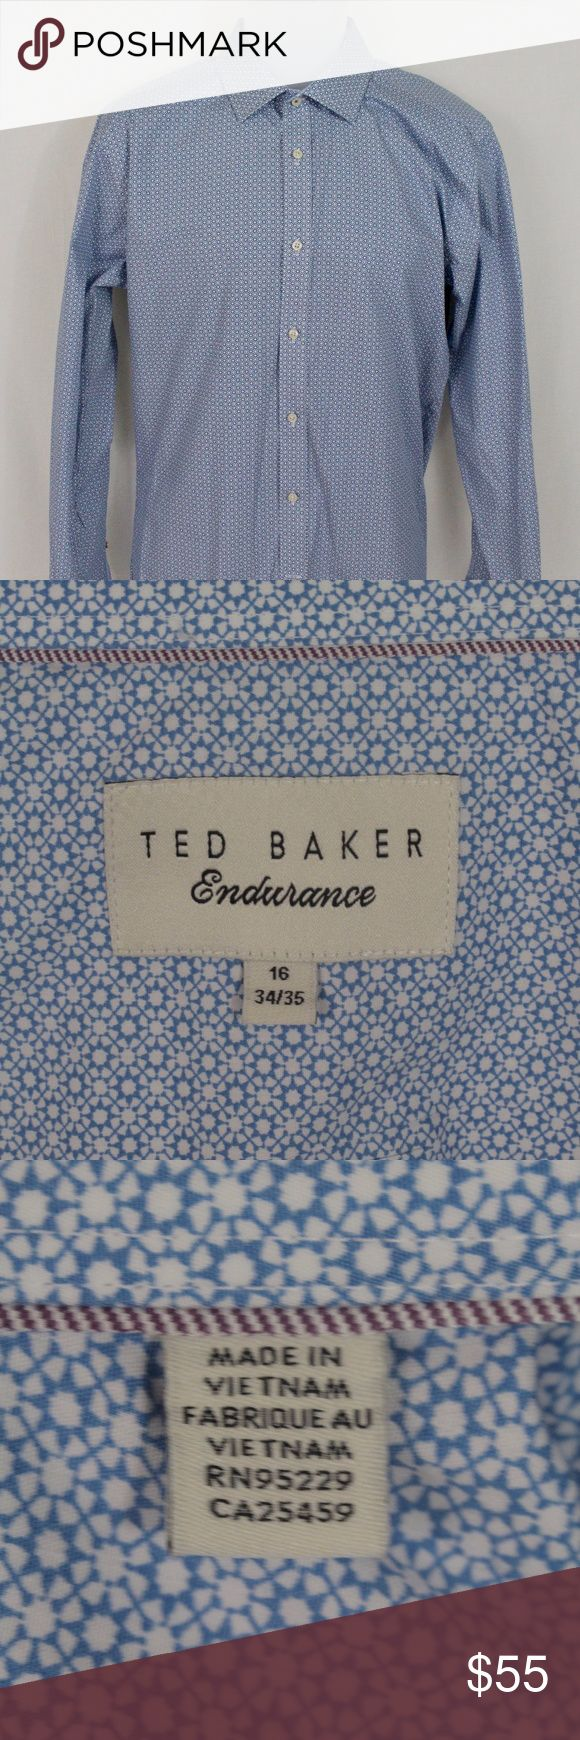 Ted Baker Endurance Dress Shirt Fine quality is now within reach with this gently used men's dress shirt. The navy and white patterning throughout presents a bold and stylish look for today's sartorial gentleman.  Size information: Size 16 34/35  Condition Notes: Excellent used condition. No stains, odors or fabric damage.  We will consider all reasonable offers. Thanks for shopping with us! Ted Baker Shirts Dress Shirts